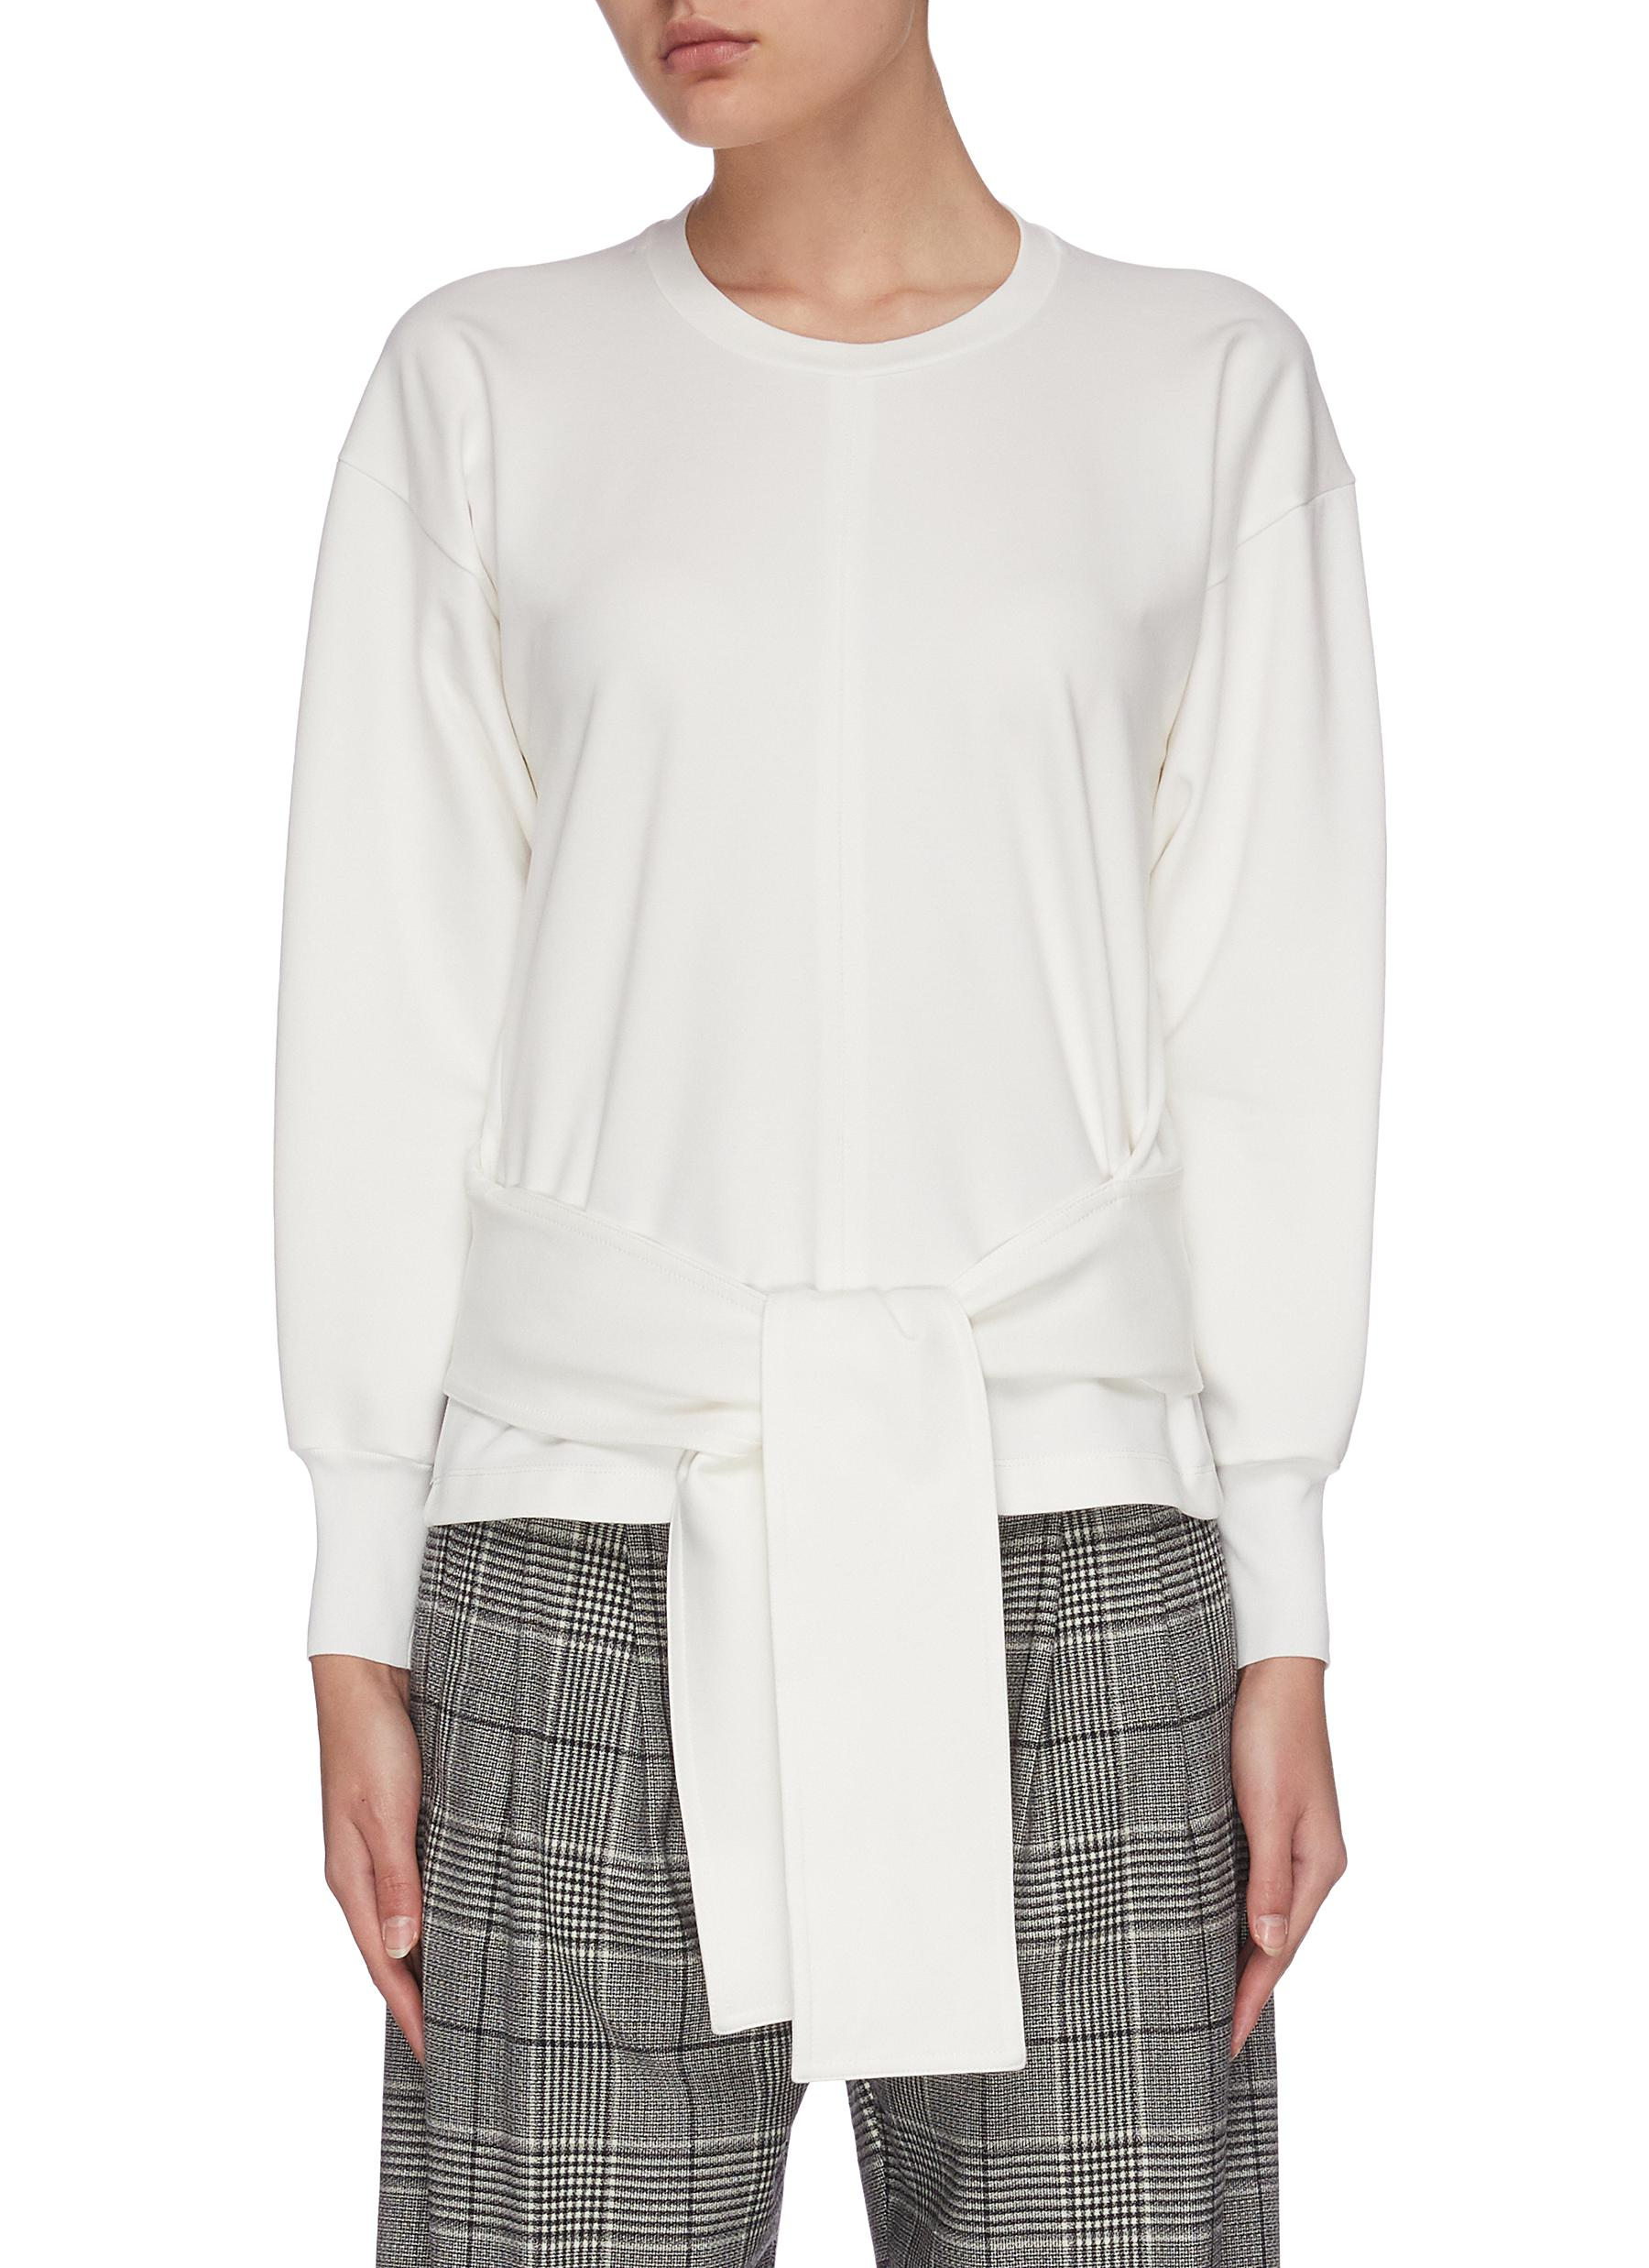 Buy 3.1 Phillip Lim Tops Waist tie crew neck top